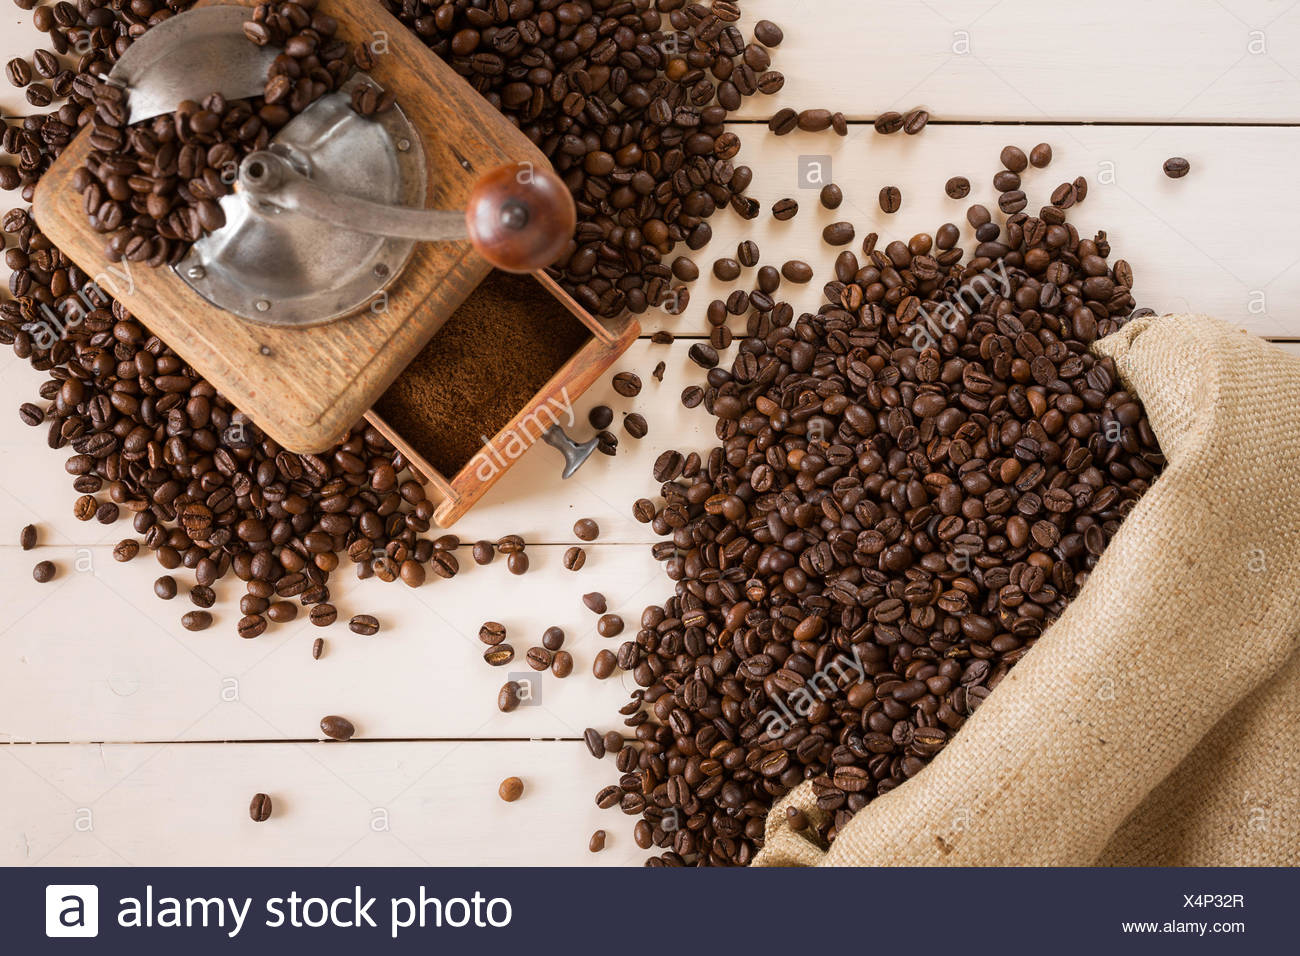 Bag of coffee and coffee grinder - Stock Image